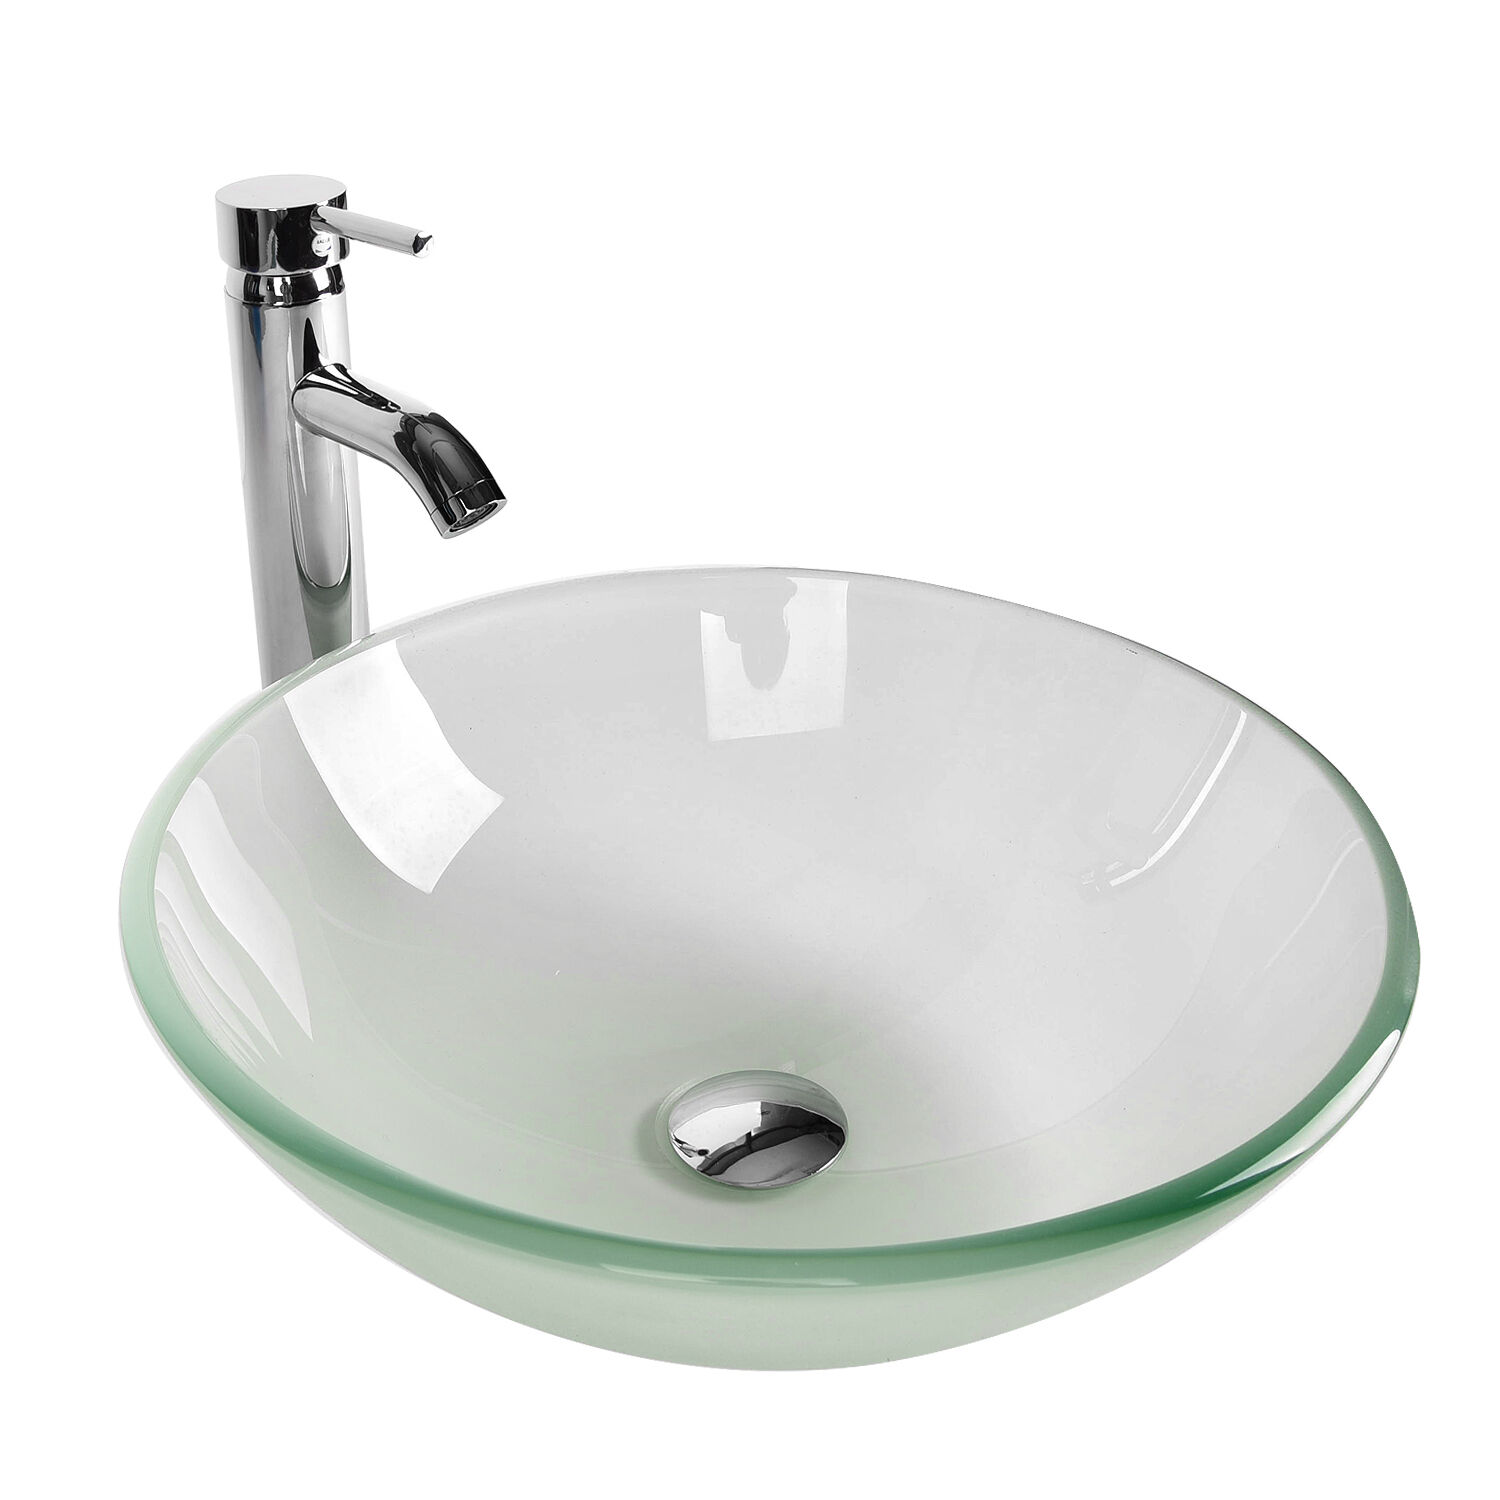 Bathroom Round Tempered Glass Clear  Vessel Sink with Faucet